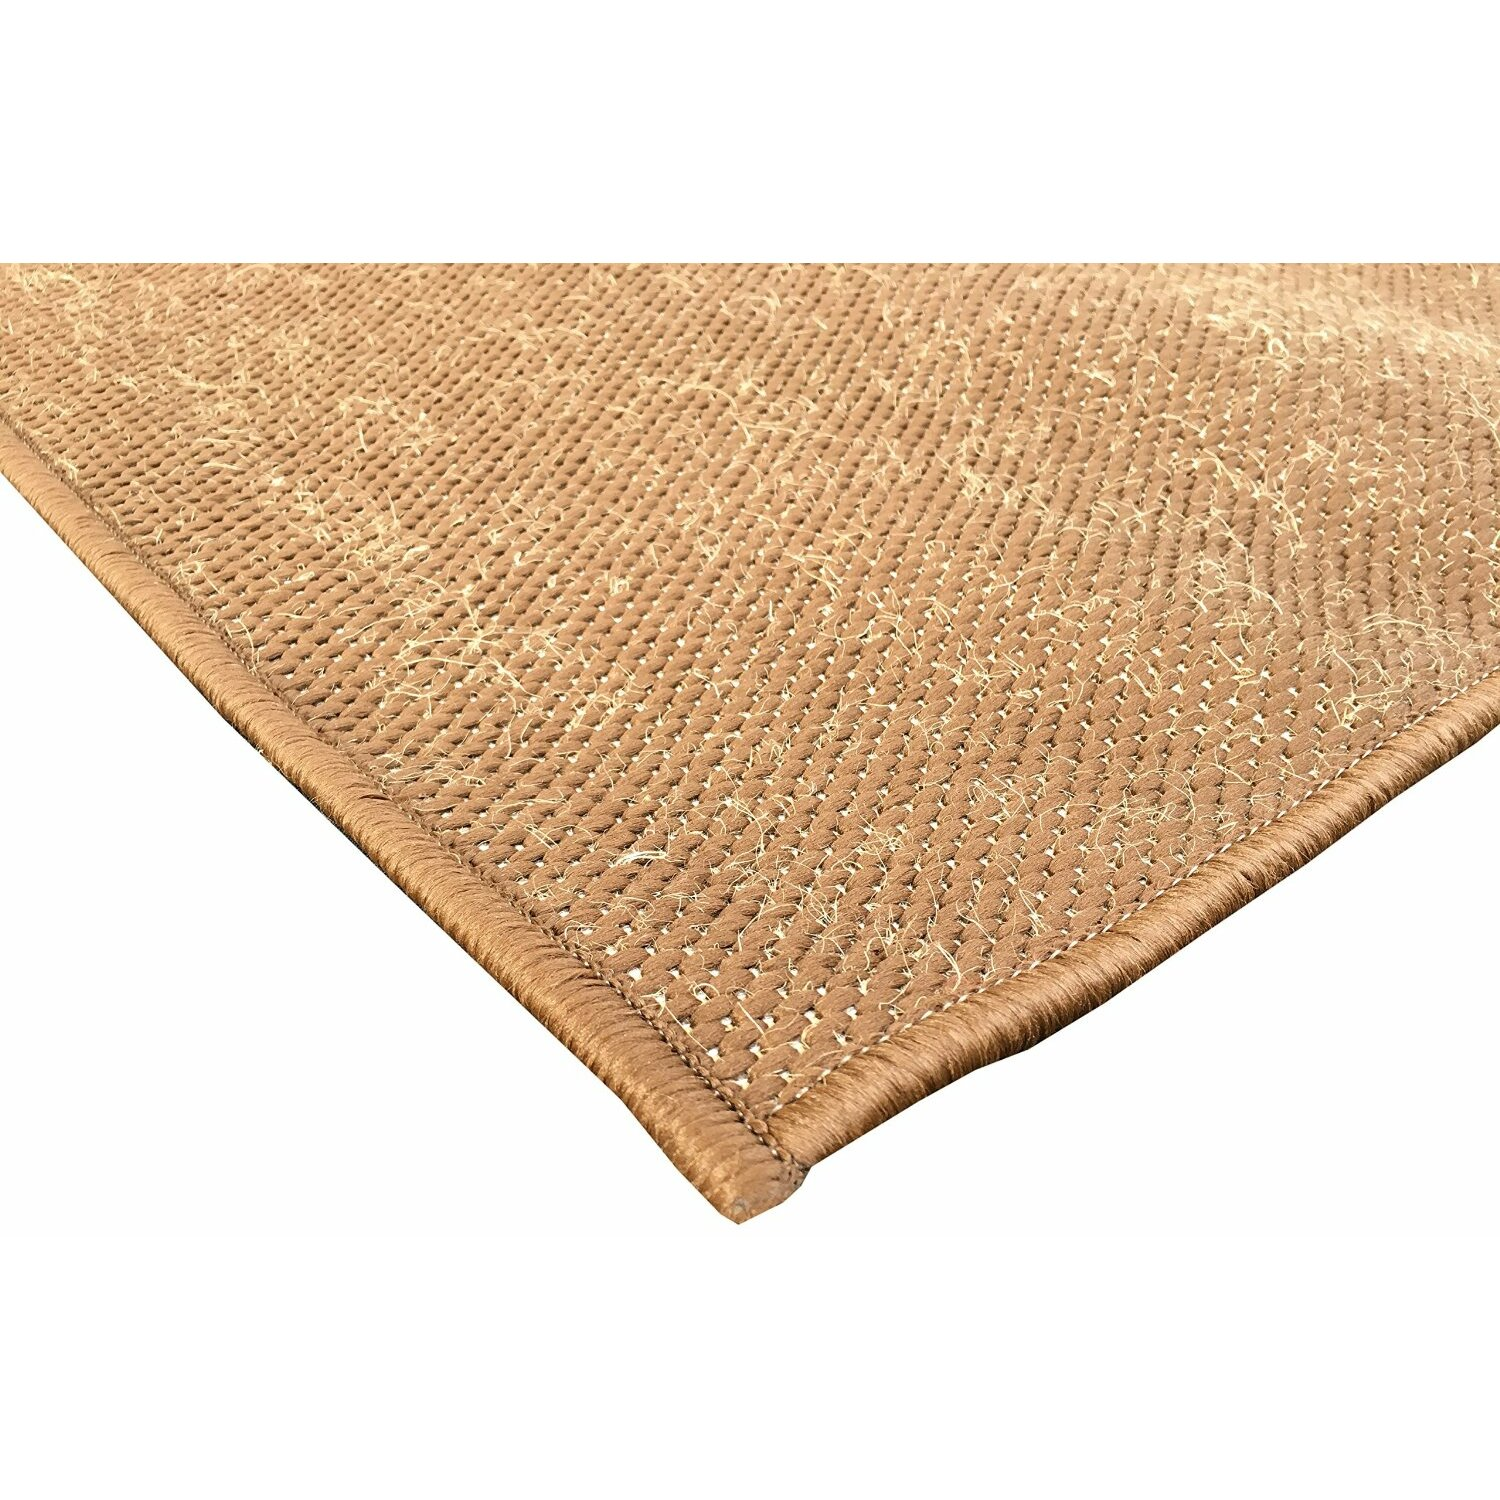 Berrnour home summer brown indoor outdoor area rug wayfair for Indoor outdoor runners rugs